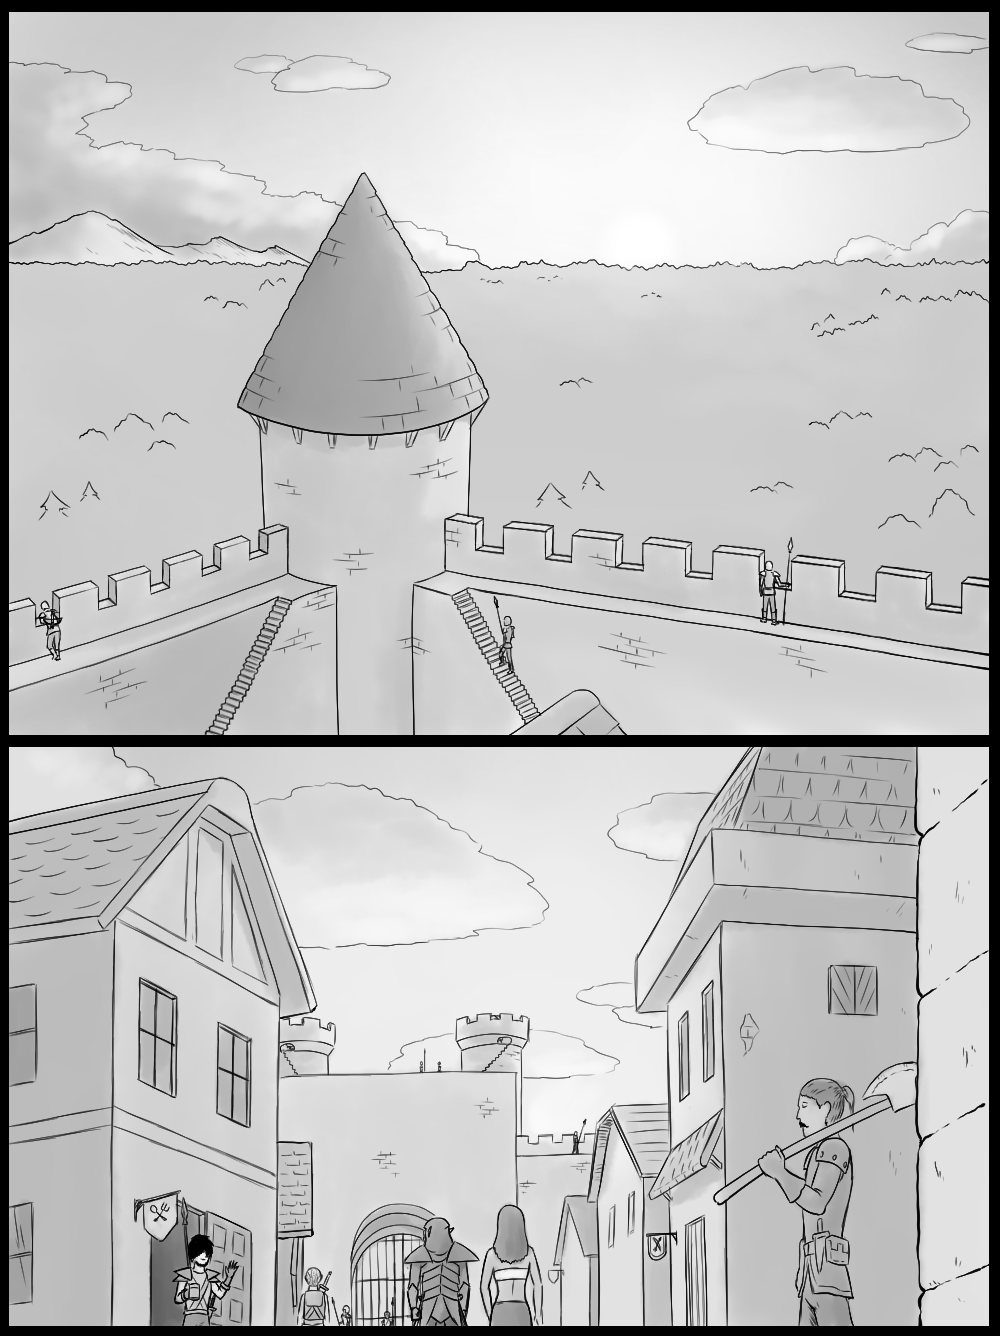 Page 2 - Life comes to the streets of Kifort